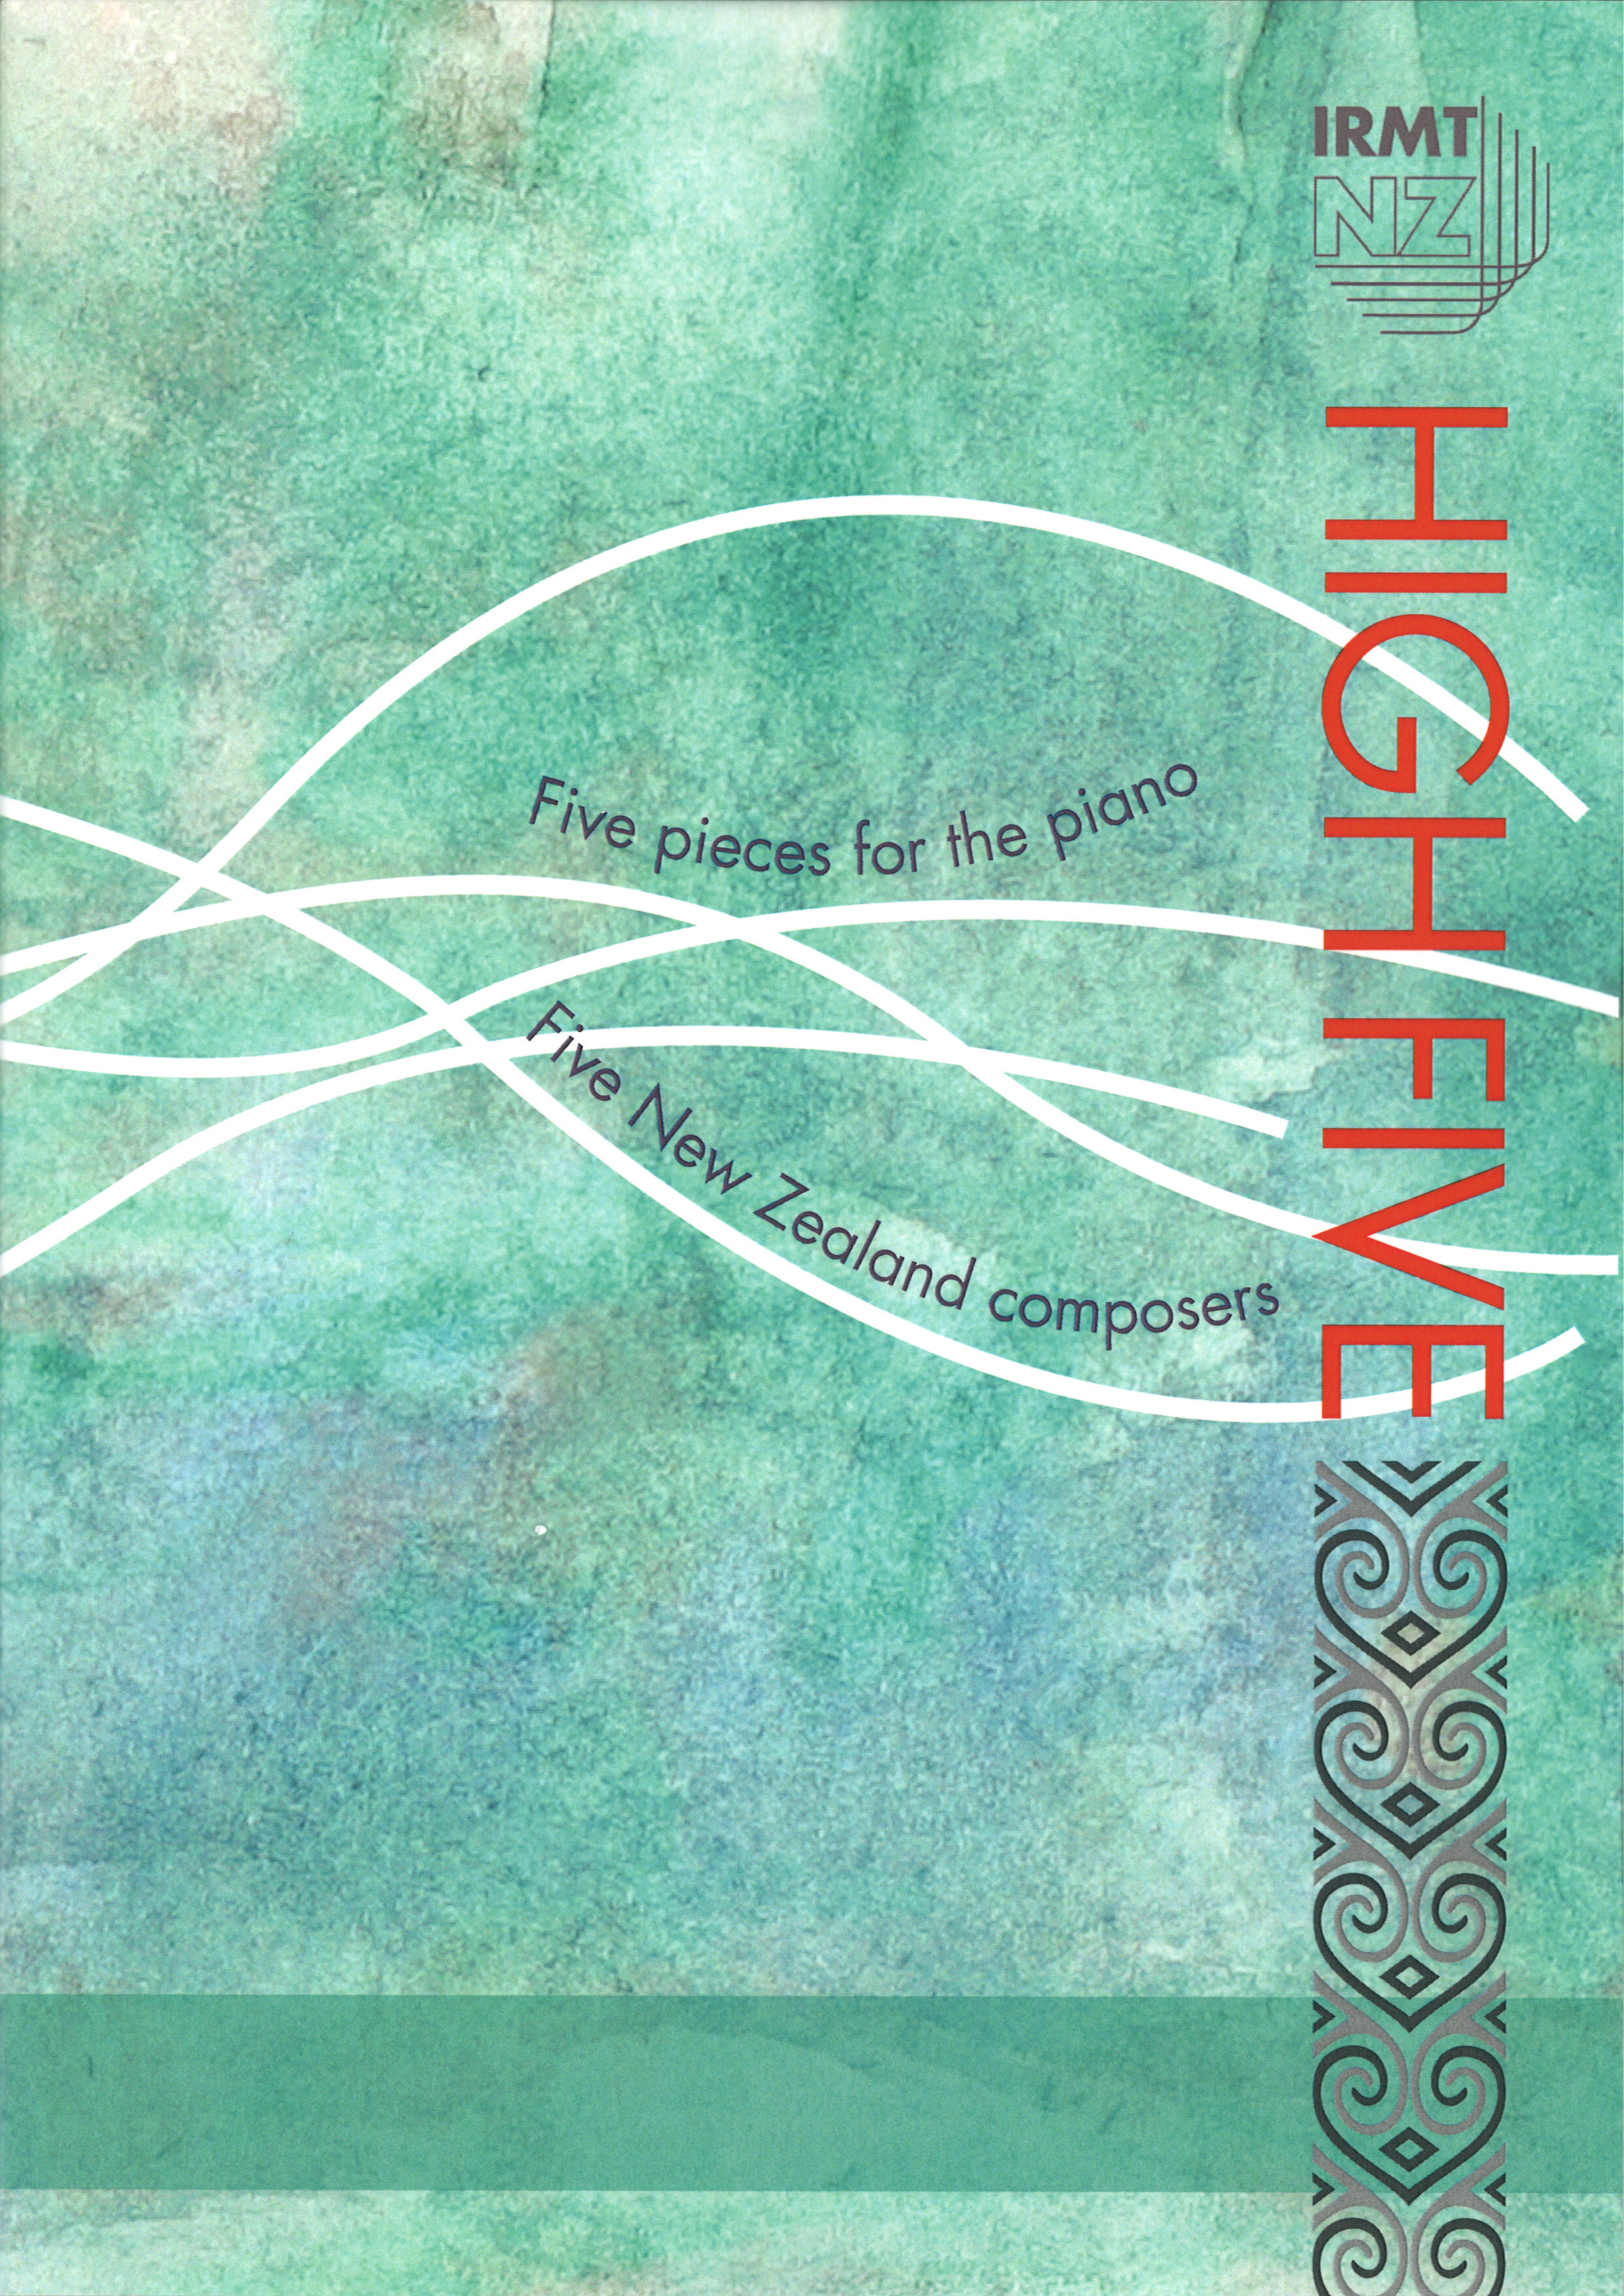 High Five: Five Pieces for the Piano - hardcopy SCORE